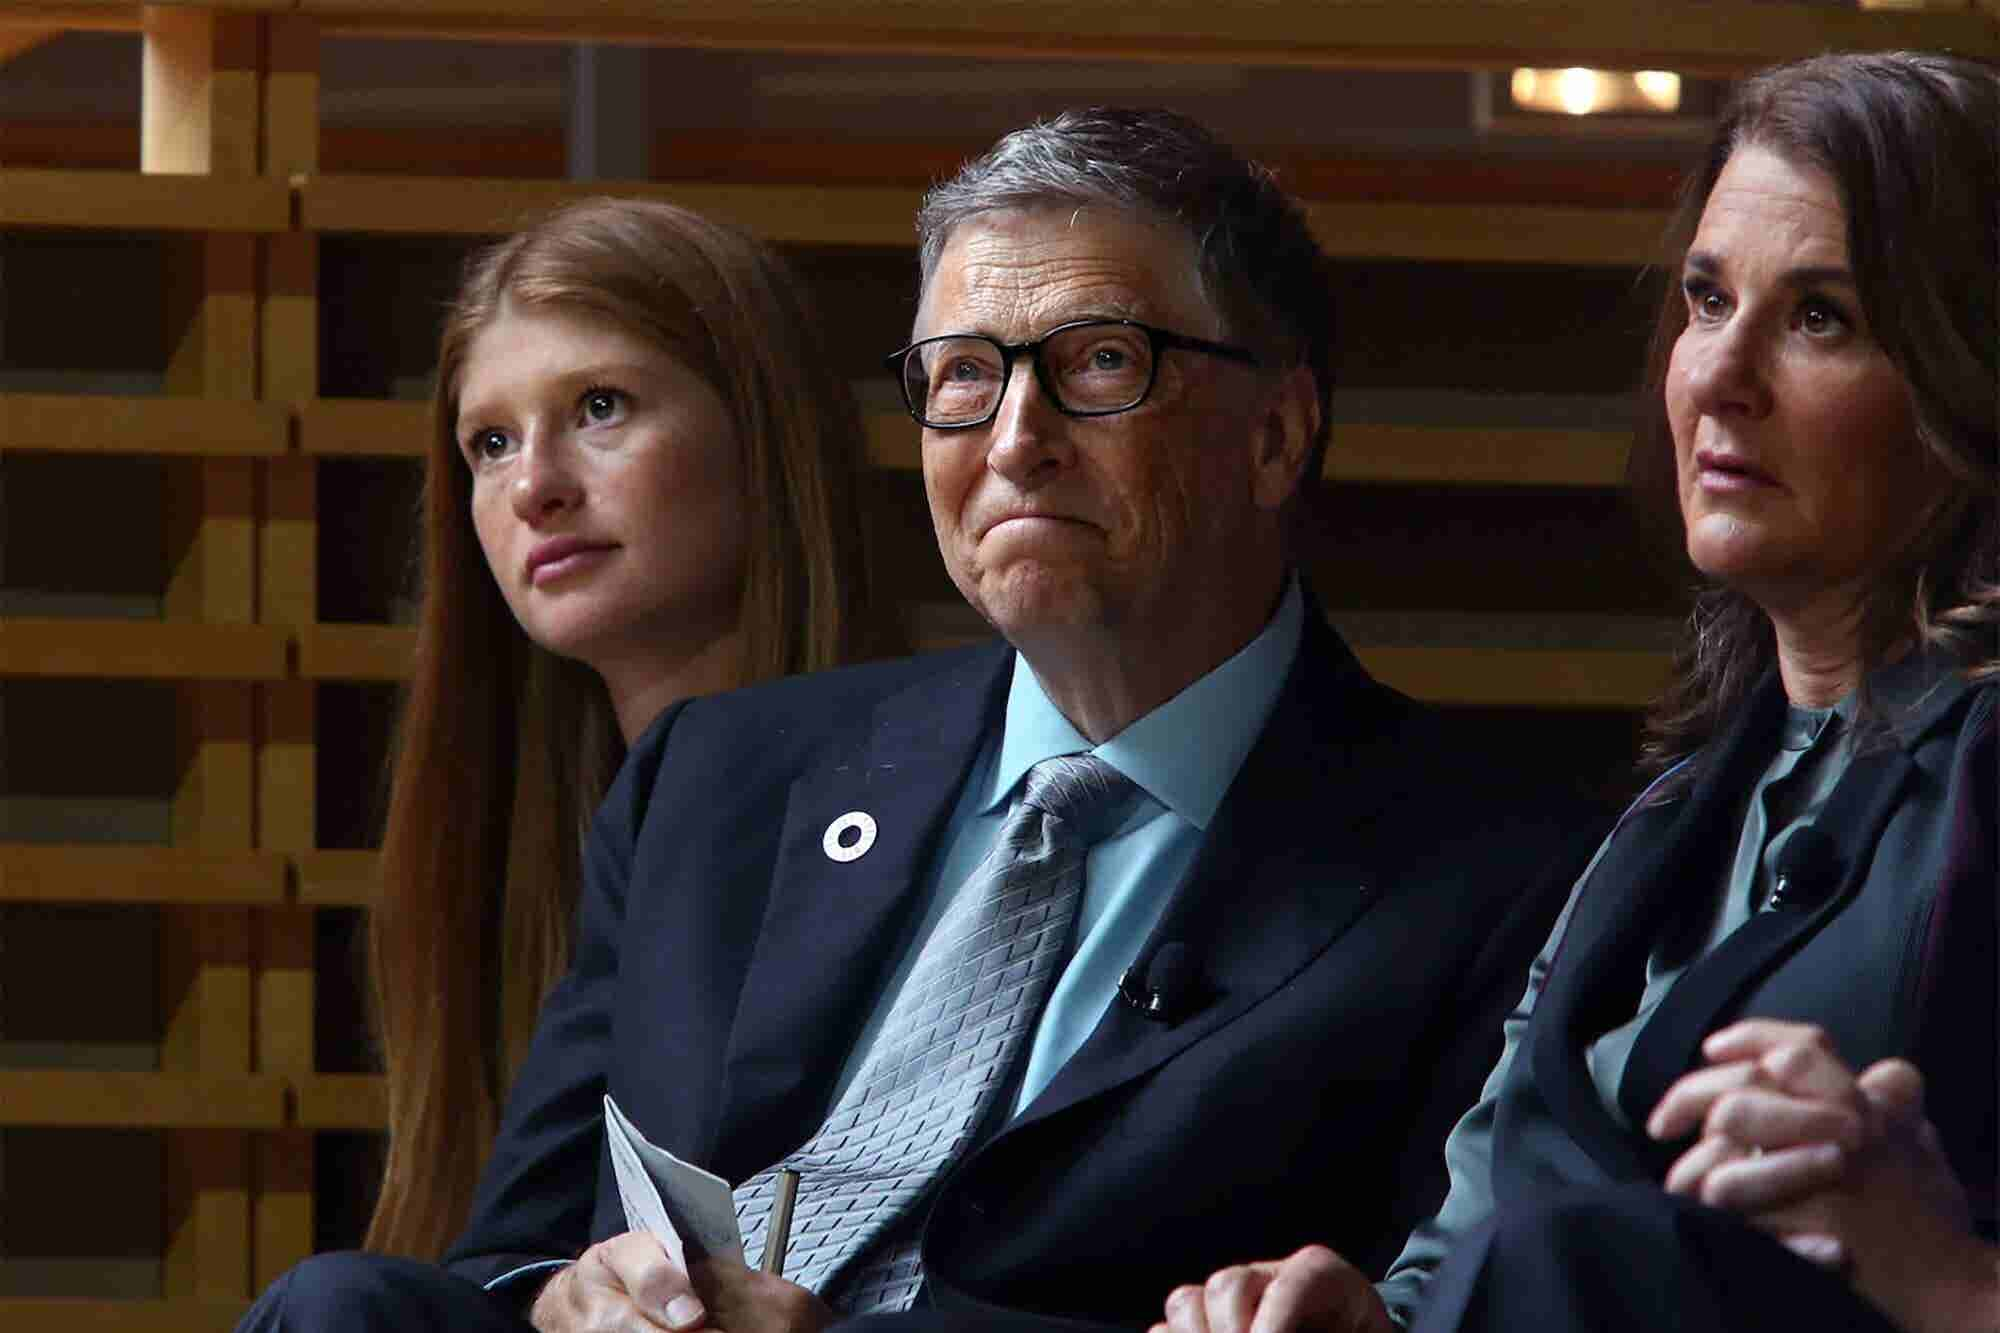 Bill Gates Has a Trampoline Room in His $127 Million Mansion Complex